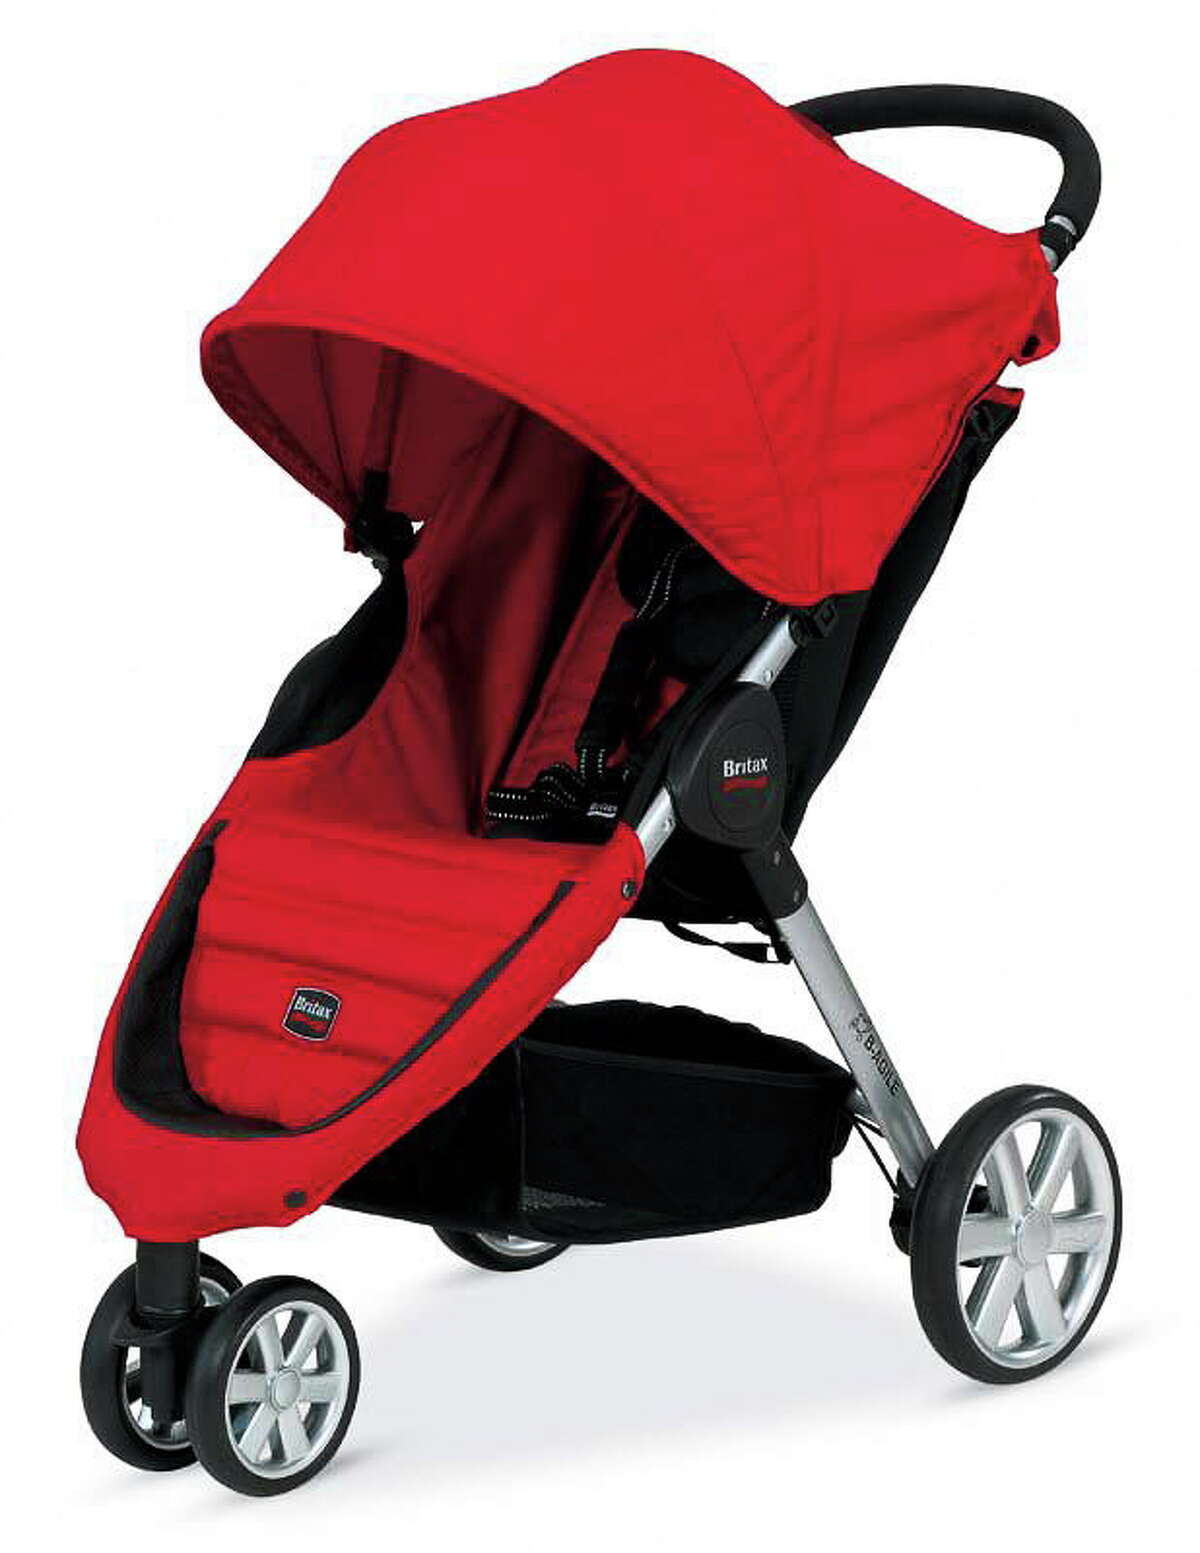 A Large B-Agile stroller by Britax, one of the recalled models.